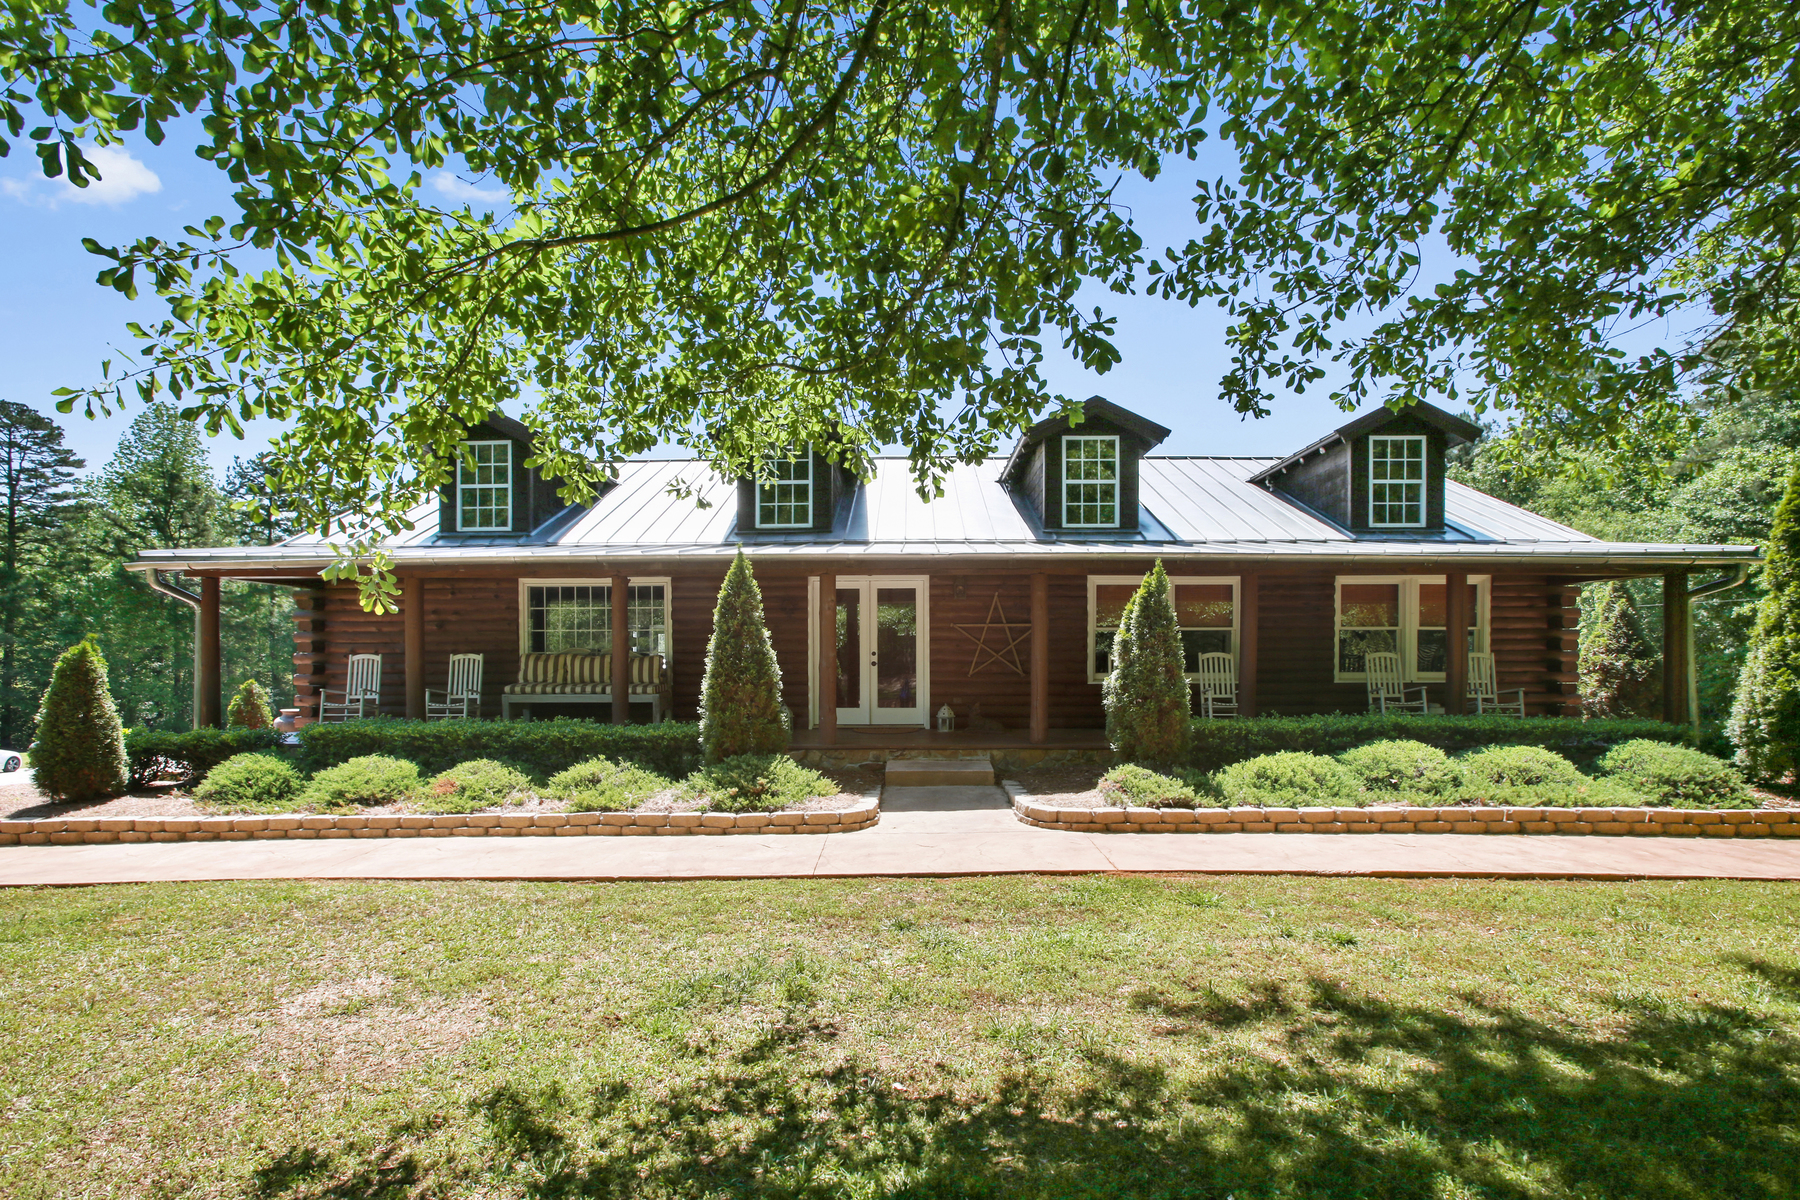 Single Family Home for Active at Stunning Equestrian Property With Income Potential 12000 Hutcheson Ferry Road Palmetto, Georgia 30268 United States